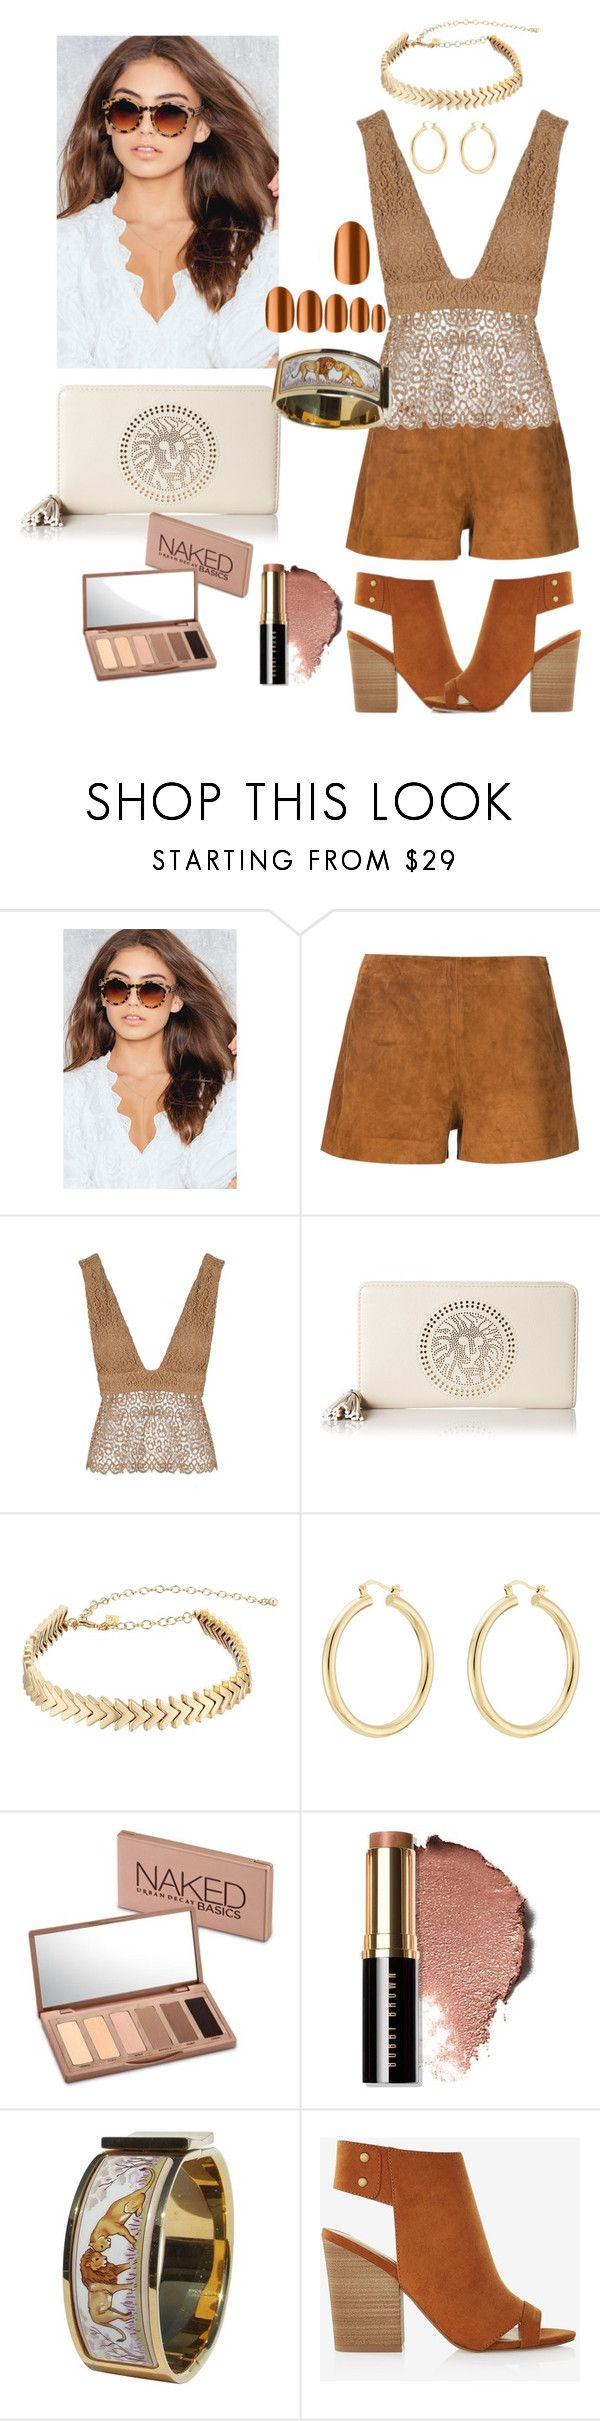 """""""Lion"""" by caenit ❤ liked on Polyvore featuring rag & bone, Related, Anne Klein, Rebecca Minkoff, Isabel Marant, Urban Decay, Bobbi Brown Cosmetics, Hermès, Express and Static Nails"""